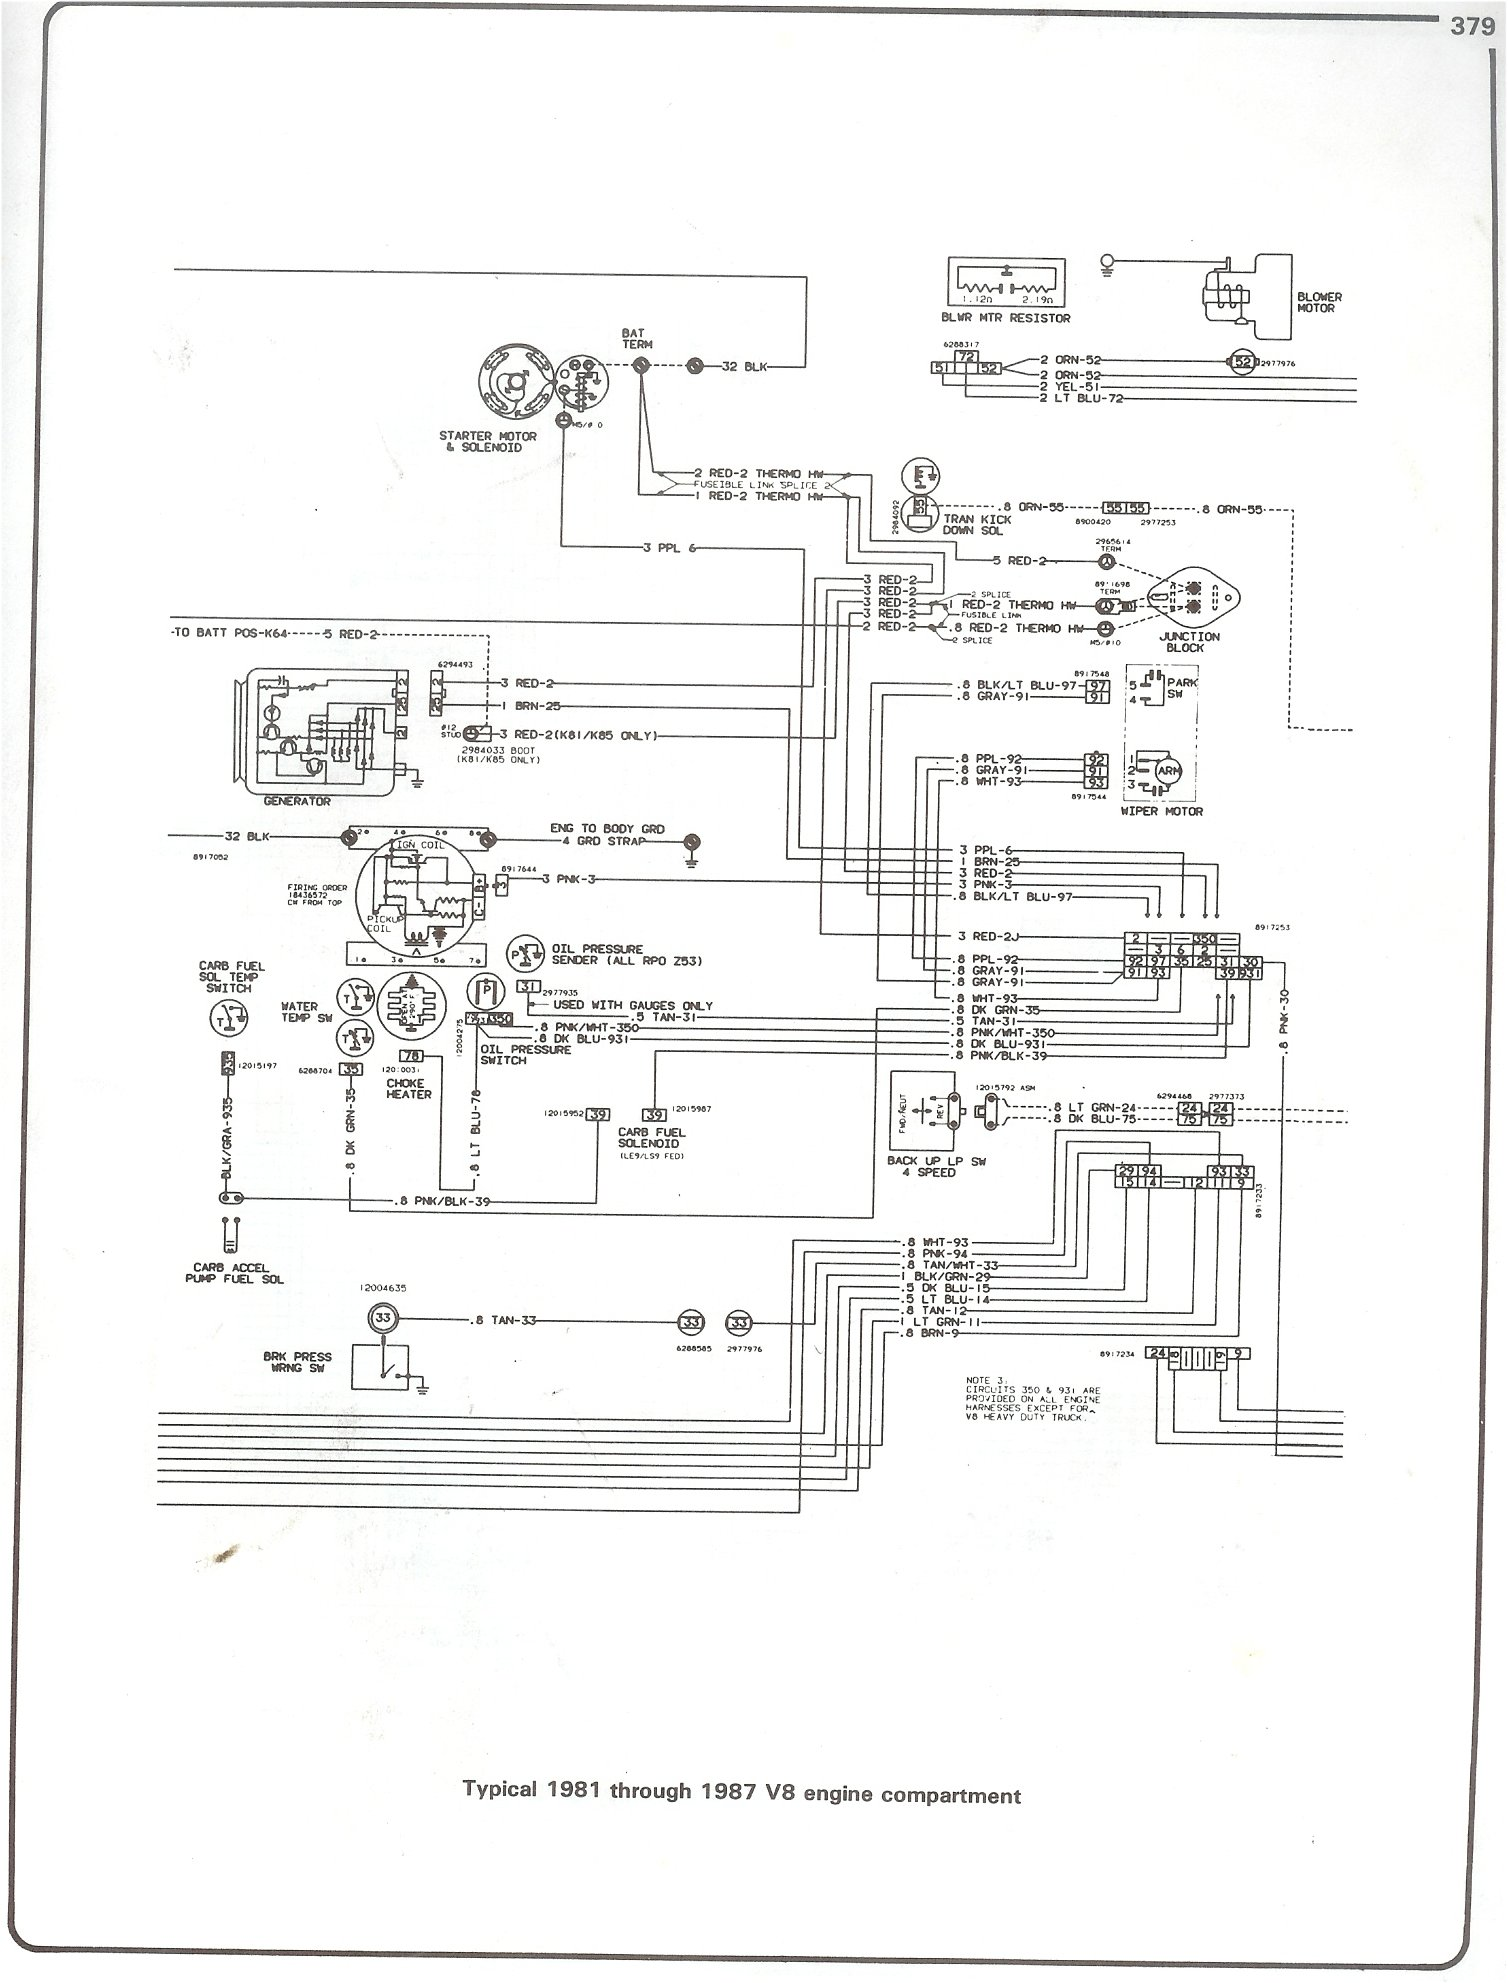 81 87_V8_engine 1976 chevy truck wiring diagram 1976 gmc wiring diagram \u2022 wiring 85 chevy truck wiring harness at gsmx.co